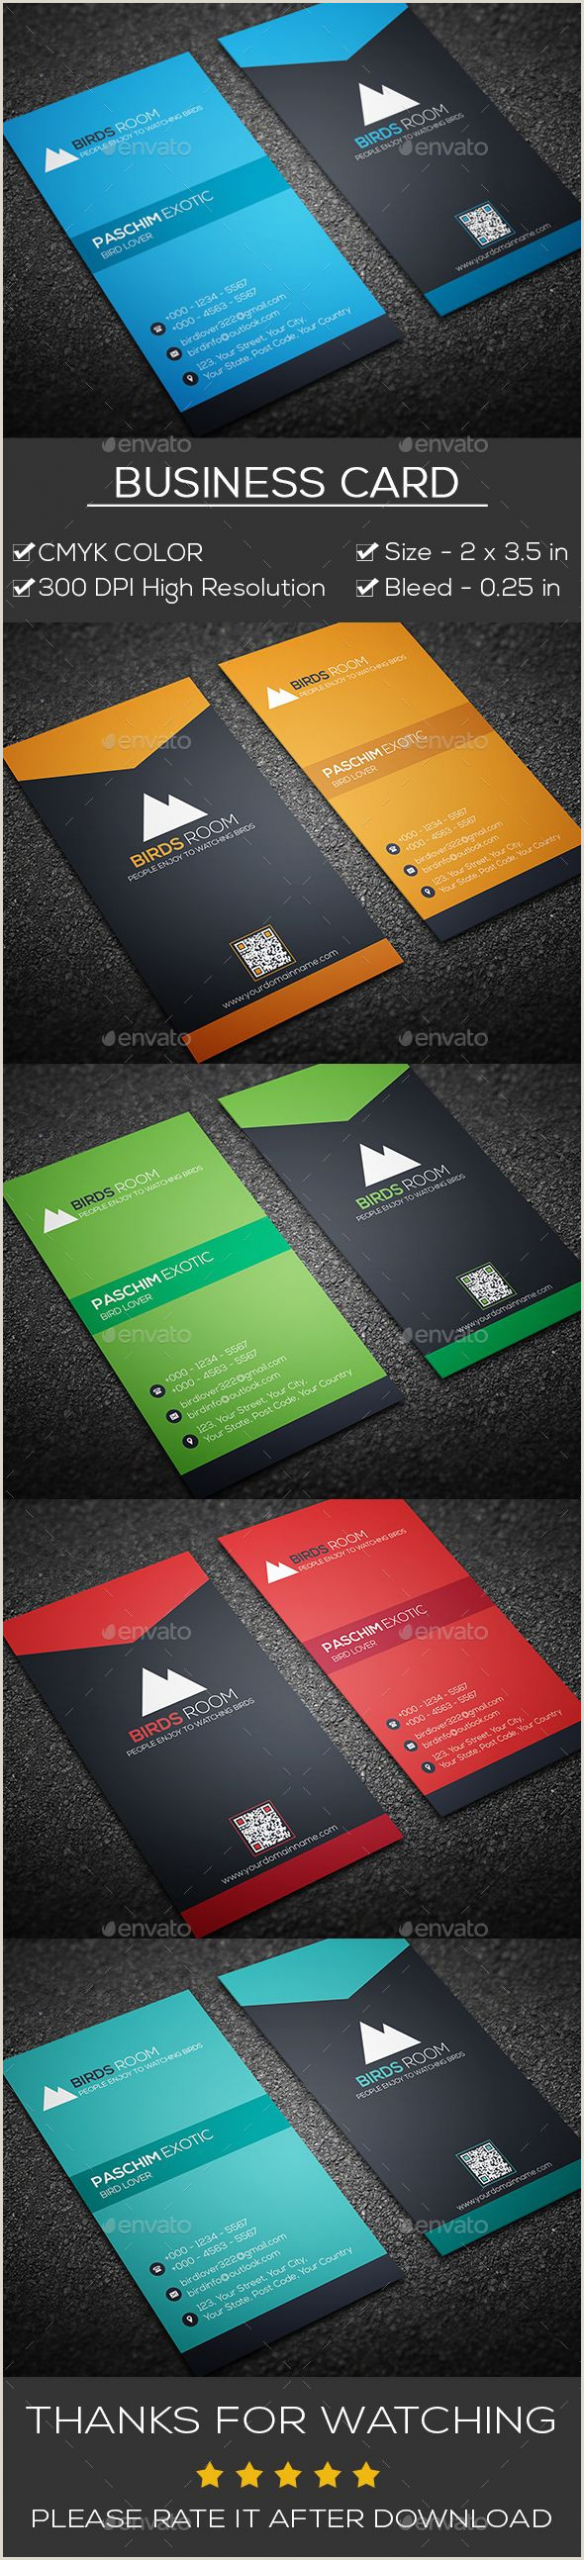 Best Place To Buy Business Cards Business Card